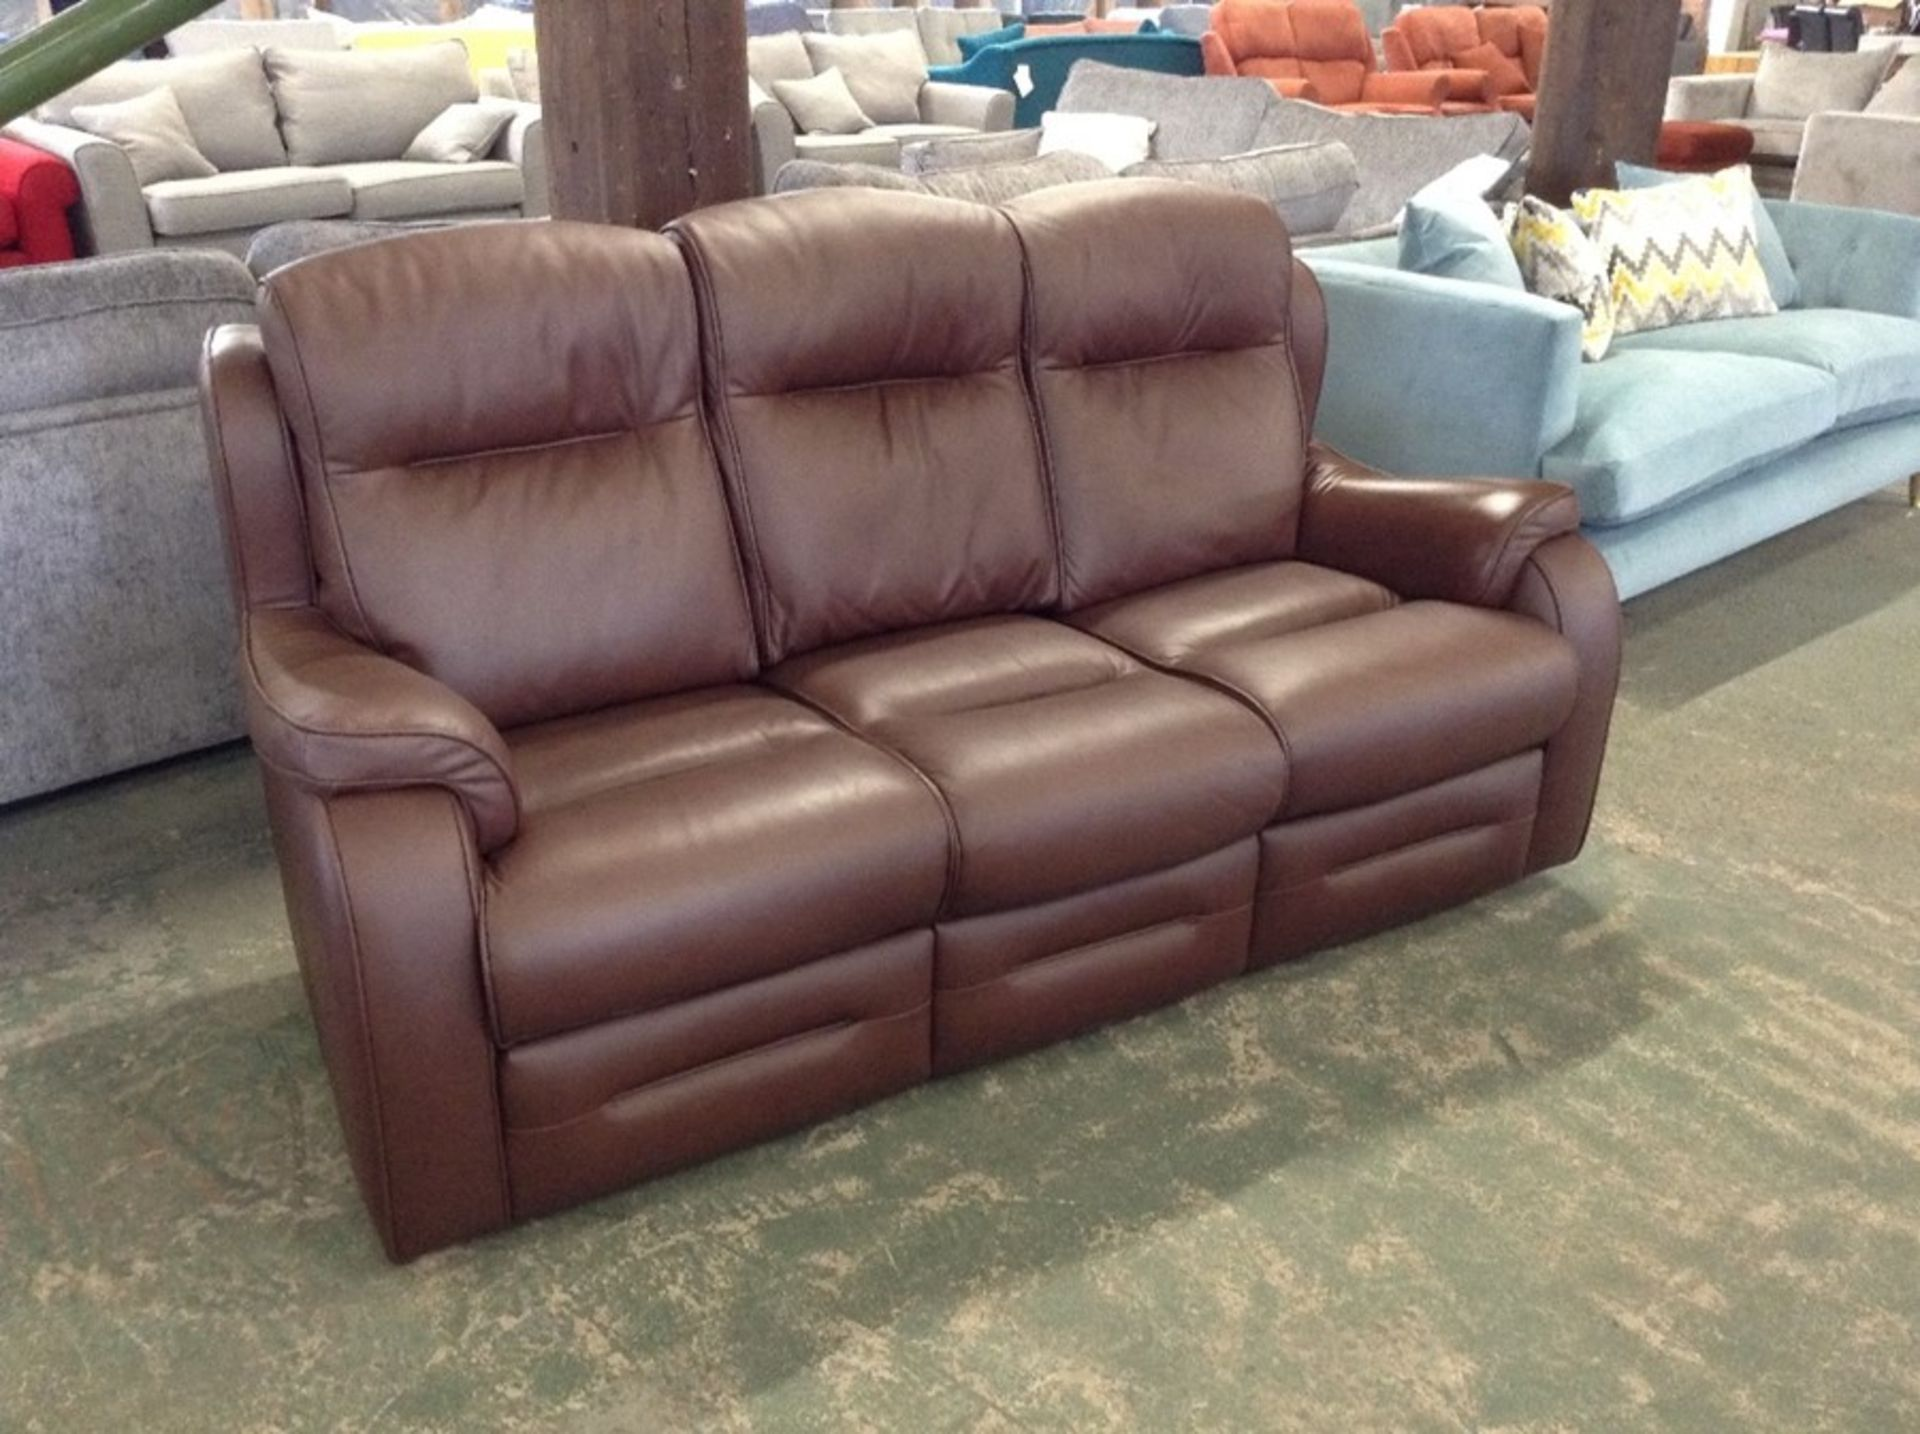 BROWN LEATHER HIGH BACK 3 SEATER SOFA (TROO2161-WOO788 - Image 2 of 2